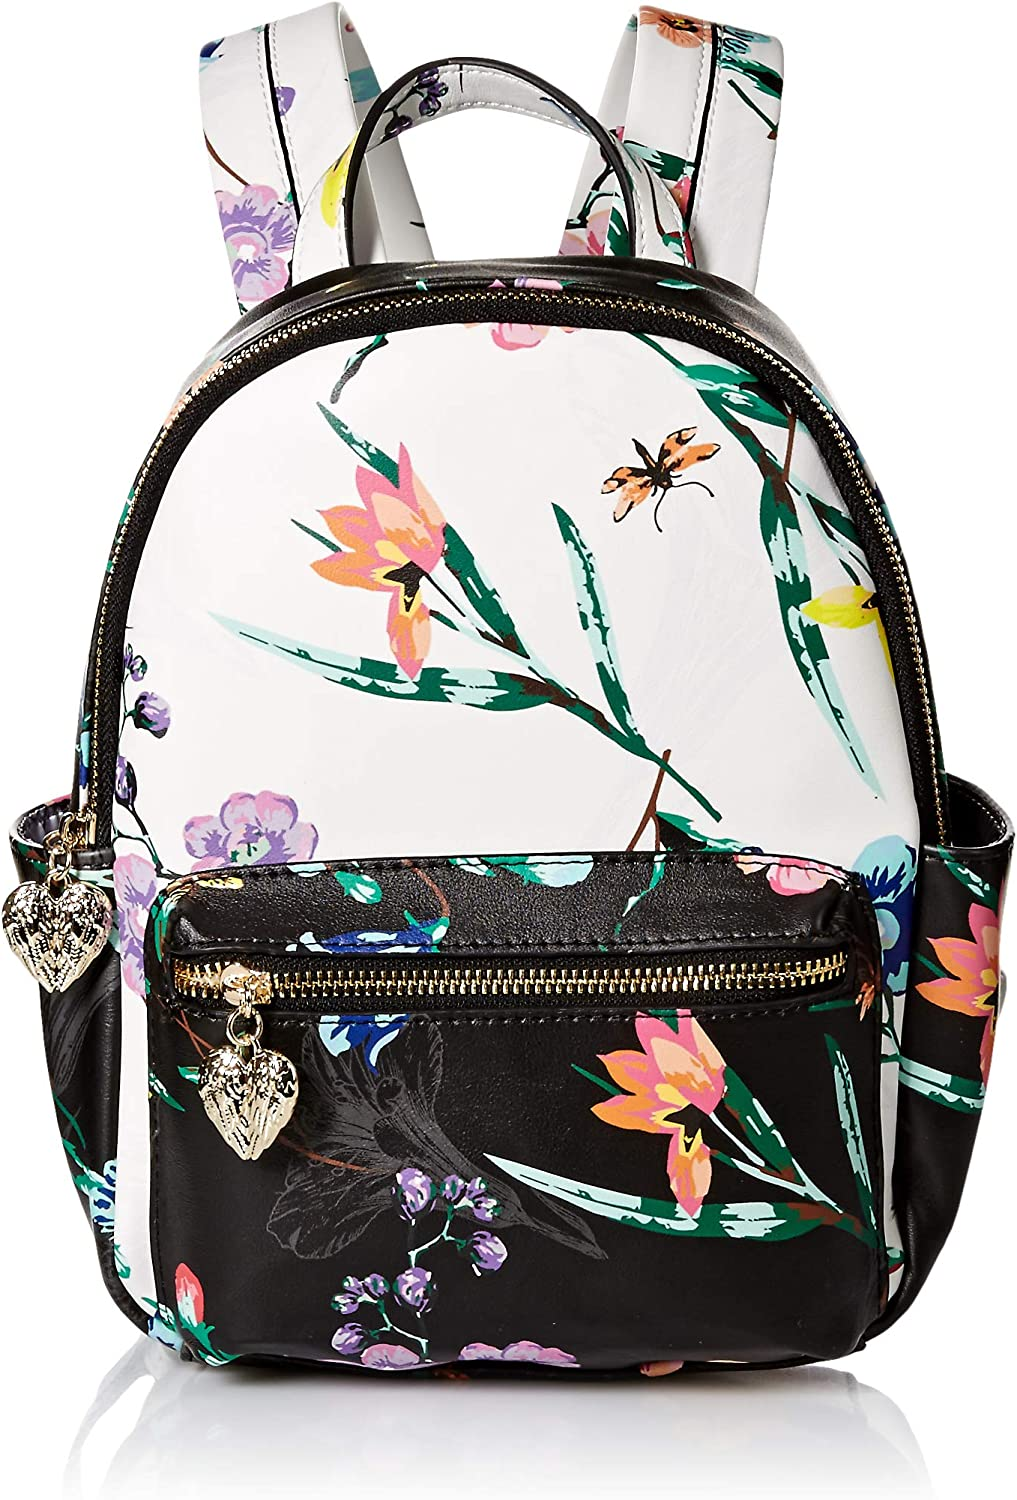 Betsey Johnson Botanical Mini Backpack